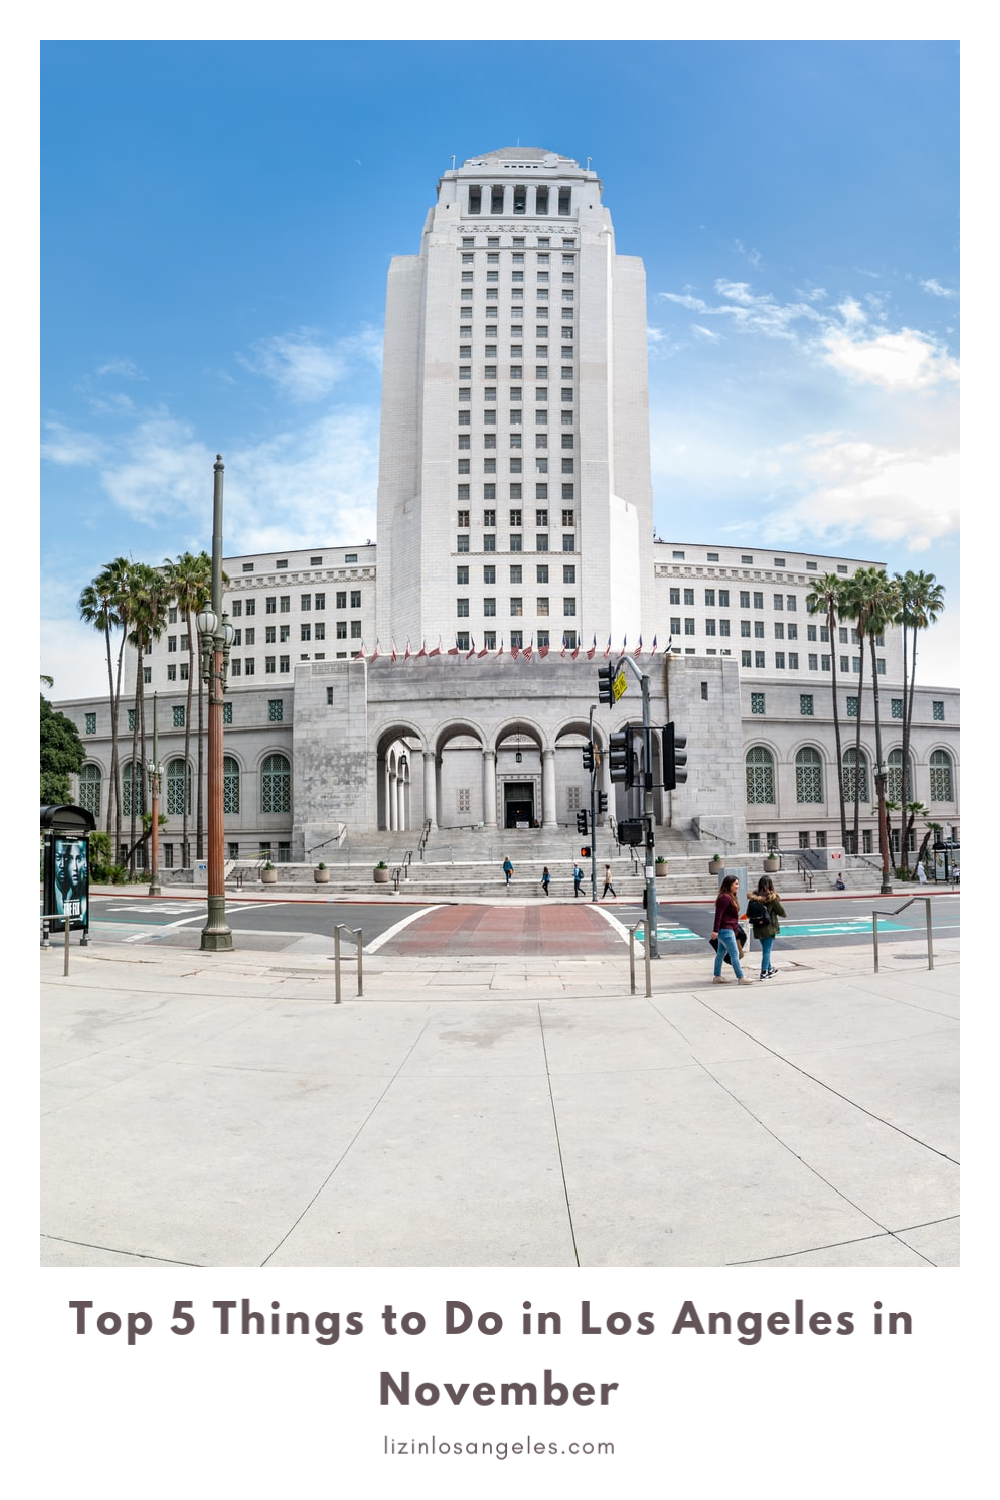 Top 5 Things to Do in Los Angeles in November, a blog post by Liz in Los Angeles, Los Angeles lifestyle blogger, an image of Grand Park in Los Angeles